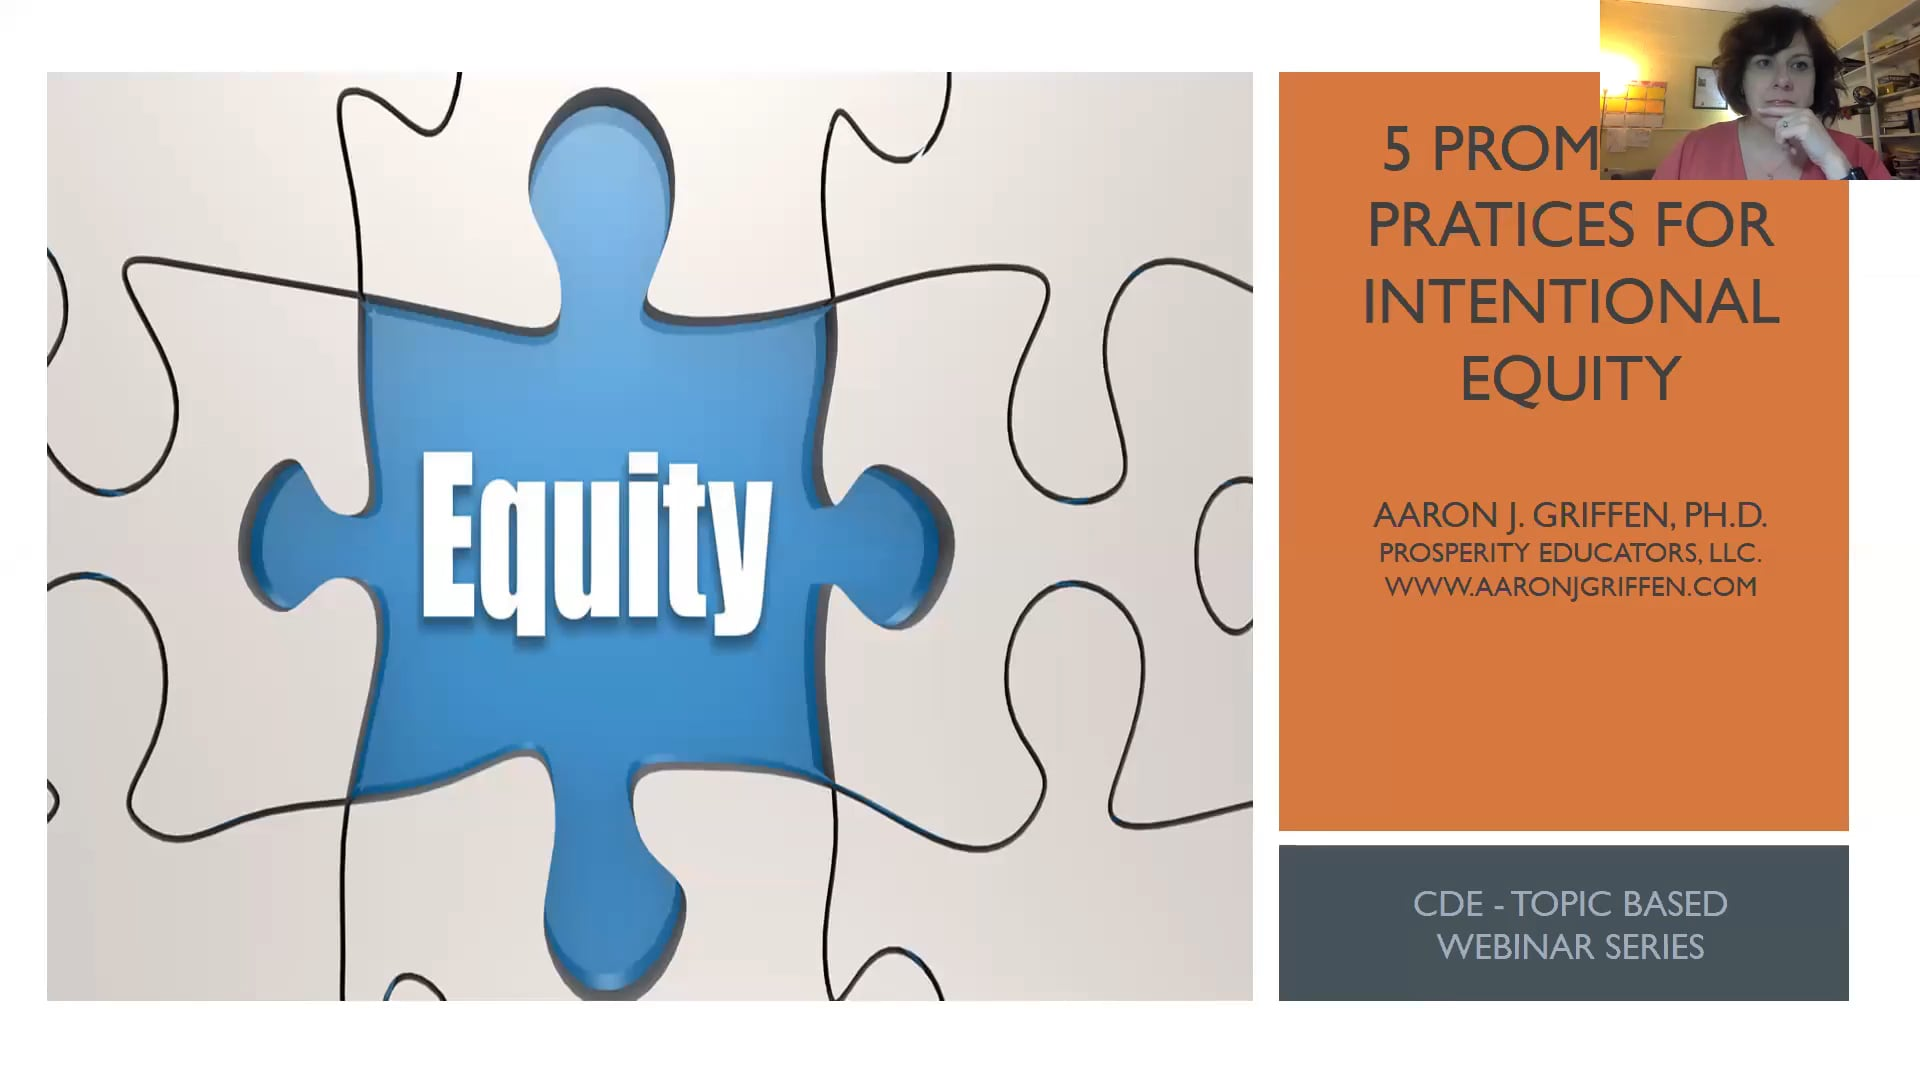 Five Promising Practices for Intentional Equity recorded on 3/10/2020